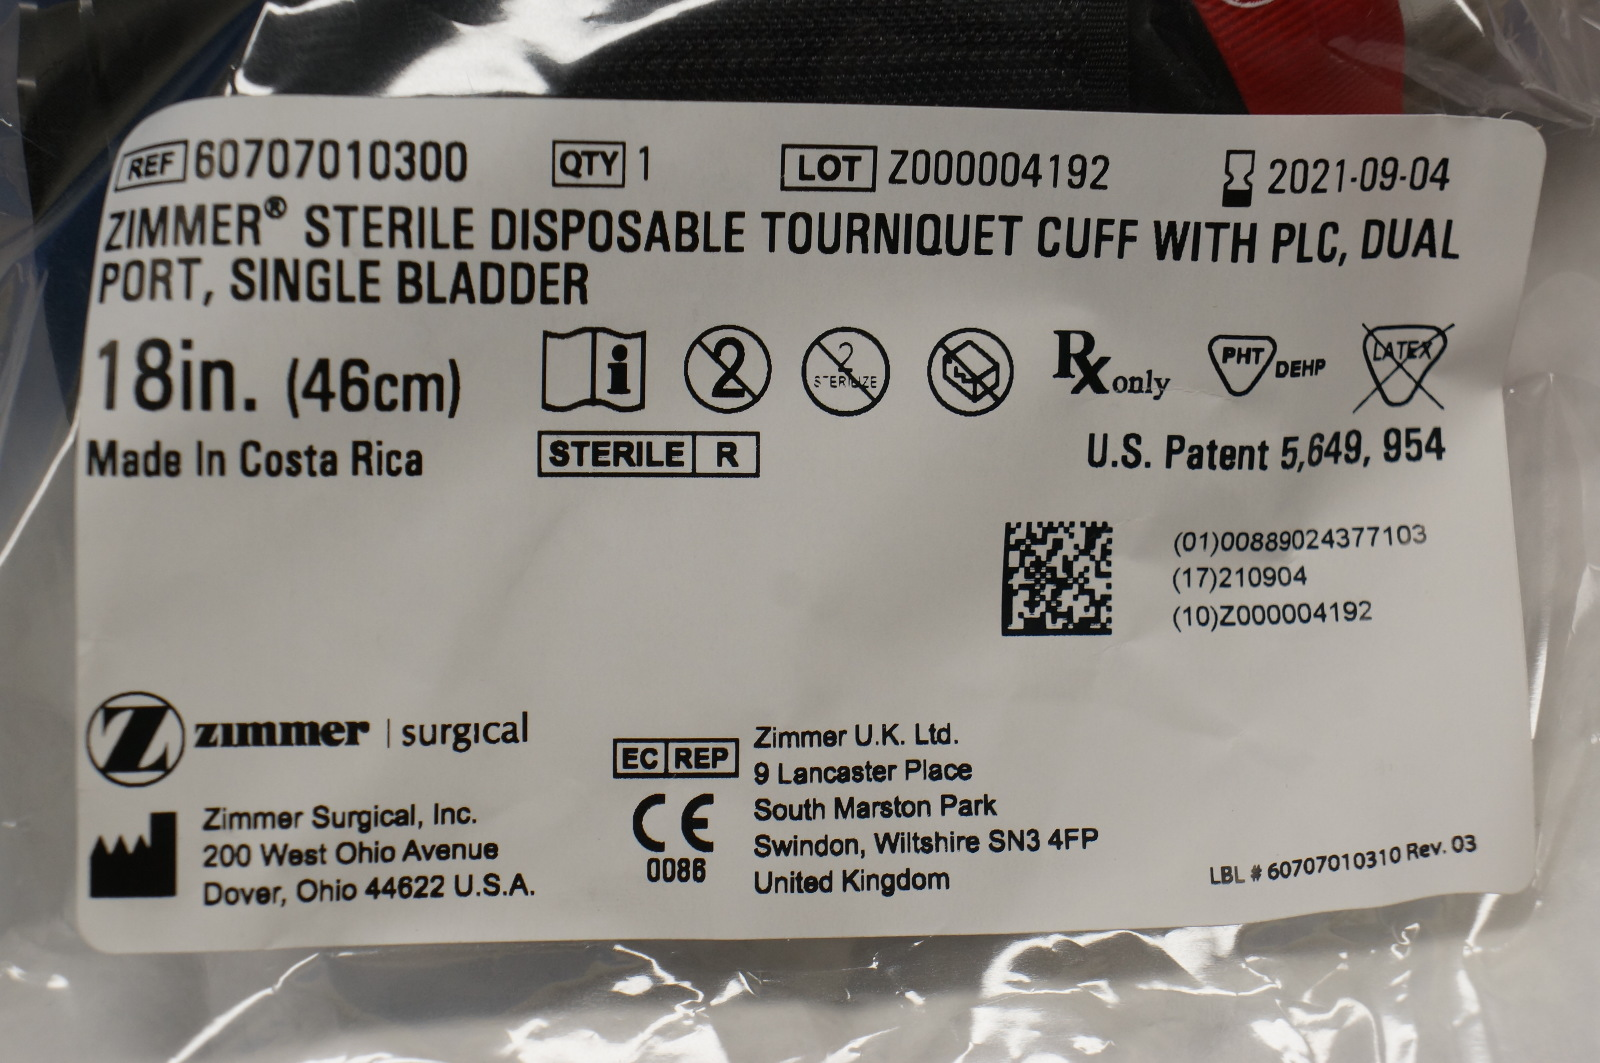 Zimmer Kirschner Wire Reference Numbers Trusted Wiring Diagram Dakota 2wd Fuse Box Map 300x248 94 Dodge 60707010300 Sterile Disposable Tourniquet Cuff Port Single